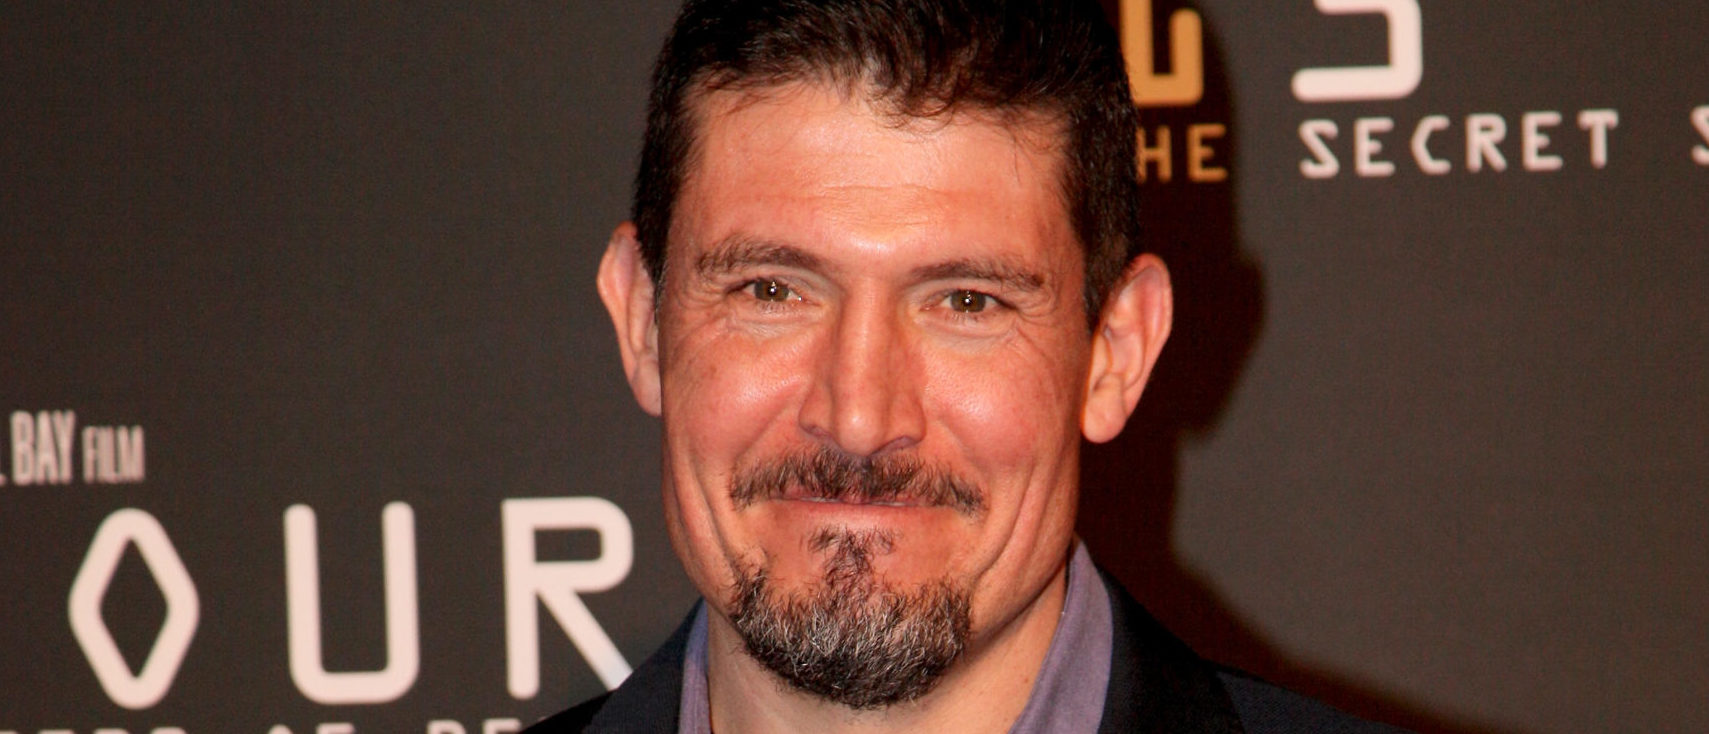 ARLINGTON, TX - JANUARY 12: Kris Paronto attends the Dallas Premiere of the Paramount Pictures film ?13 Hours: The Secret Soldiers of Benghazi? at the AT&T Dallas Cowboys Stadium on January 12, 2016 in Arlington, Texas. (Photo by Peter Larsen/Getty Images for Paramount Pictures)